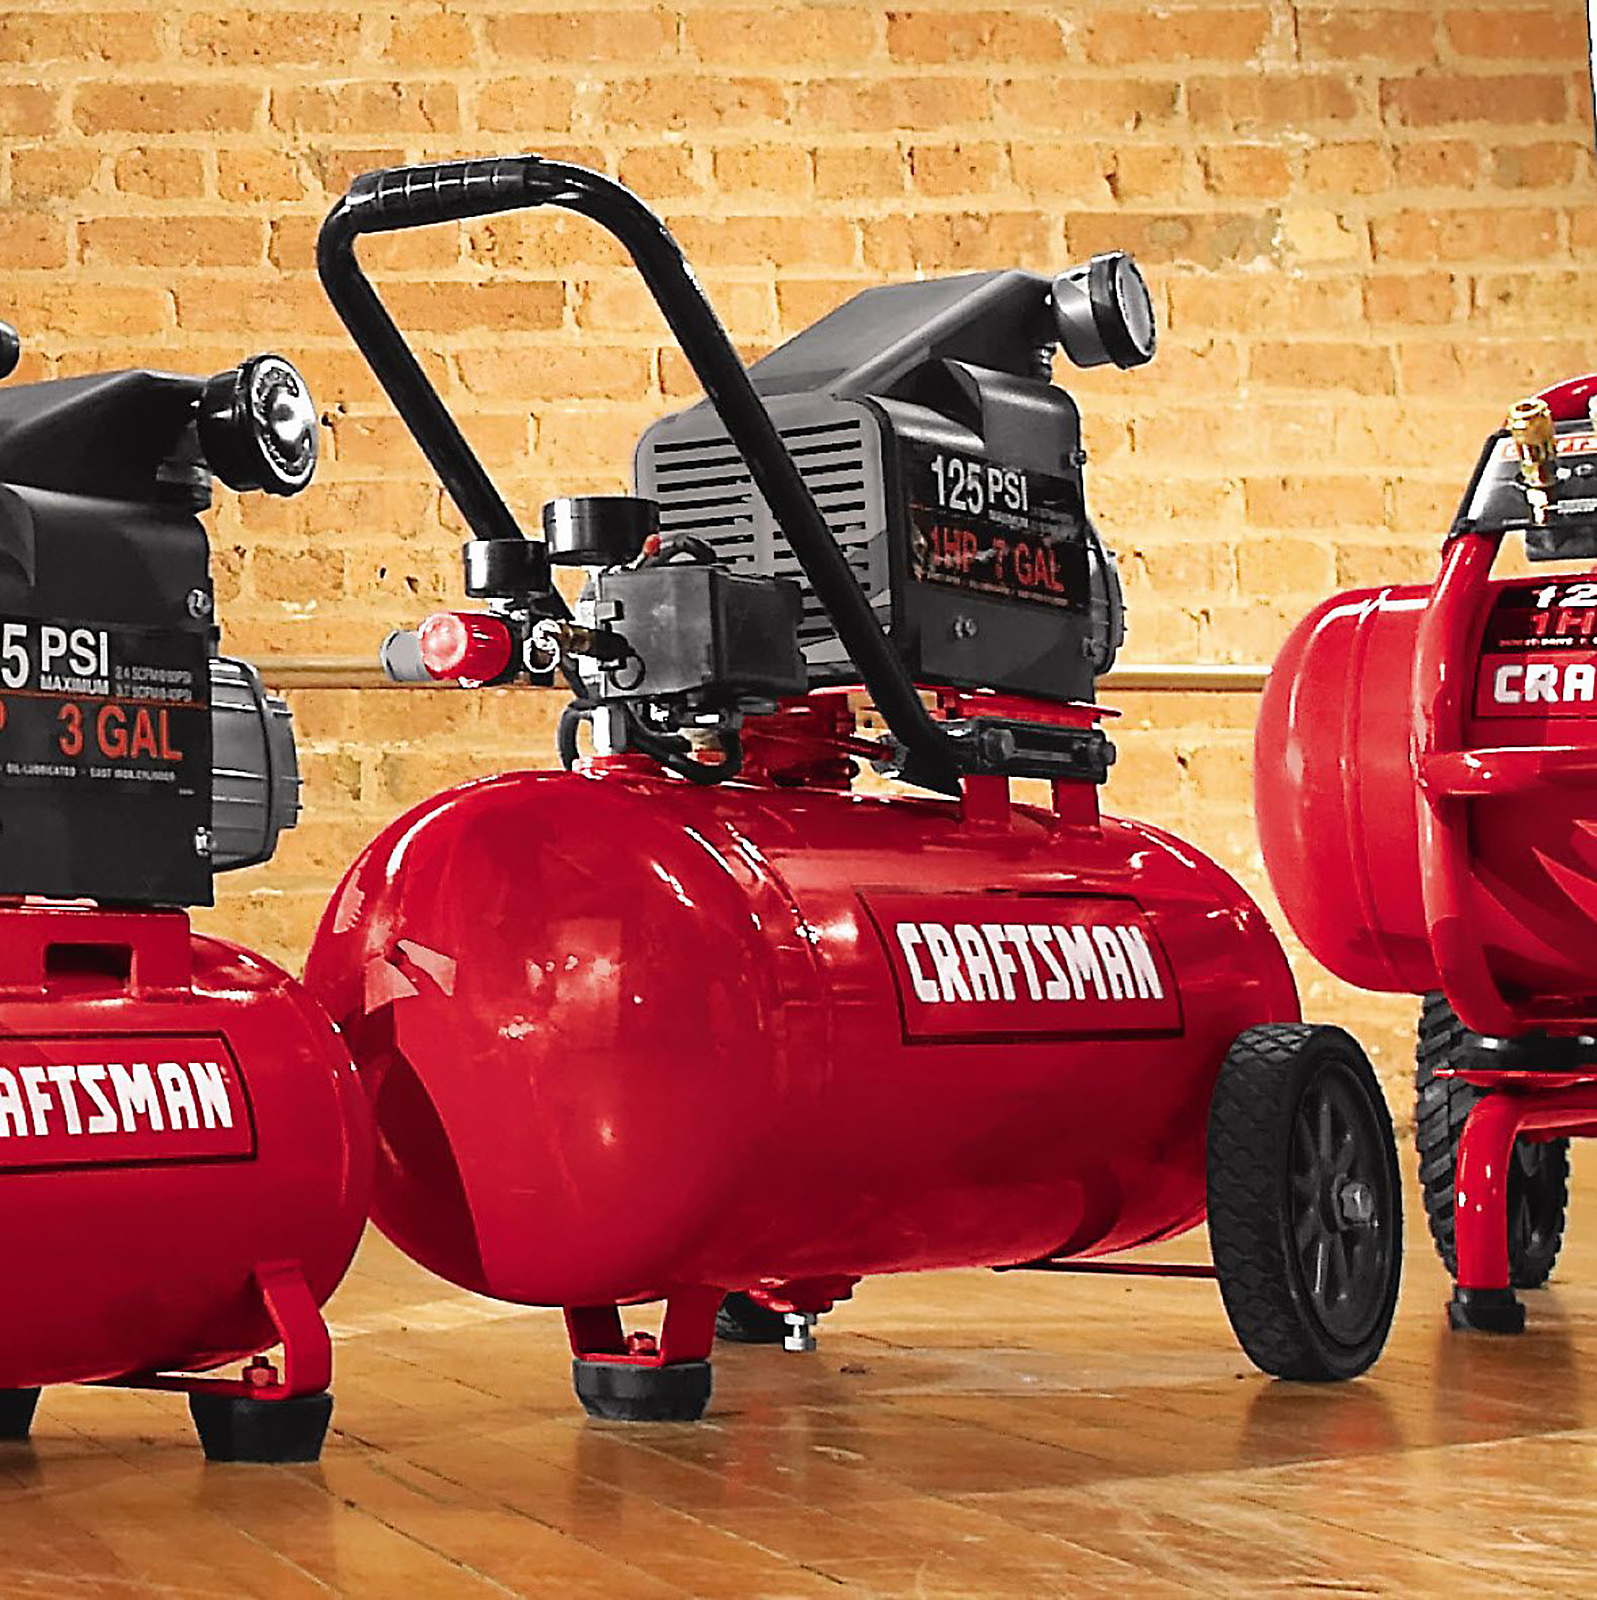 Craftsman 7 Gallon Portable Horizontal Air Compressor with Hose and Accessory Kit